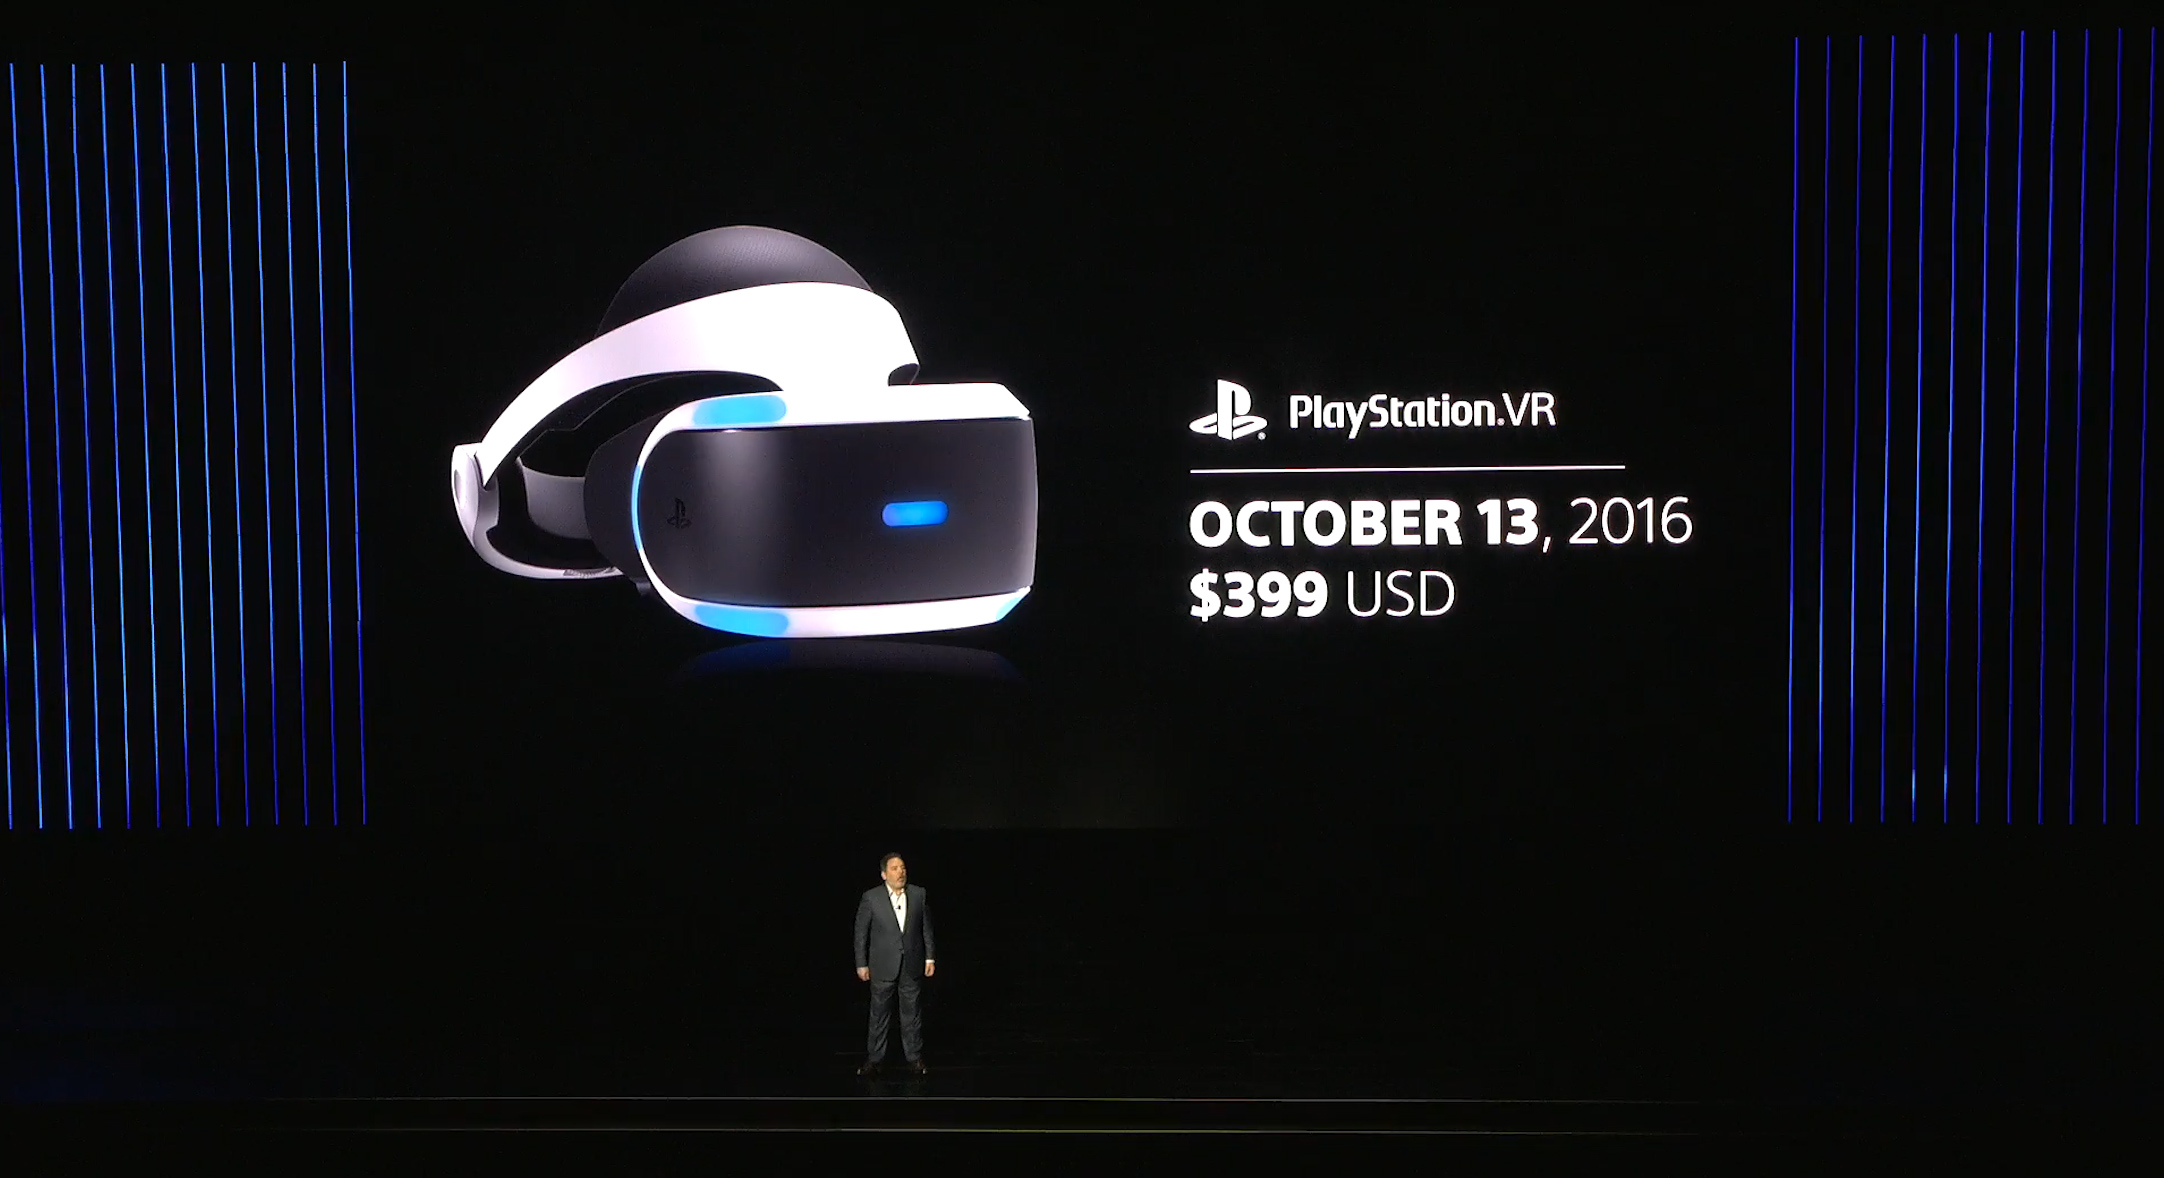 PS VR